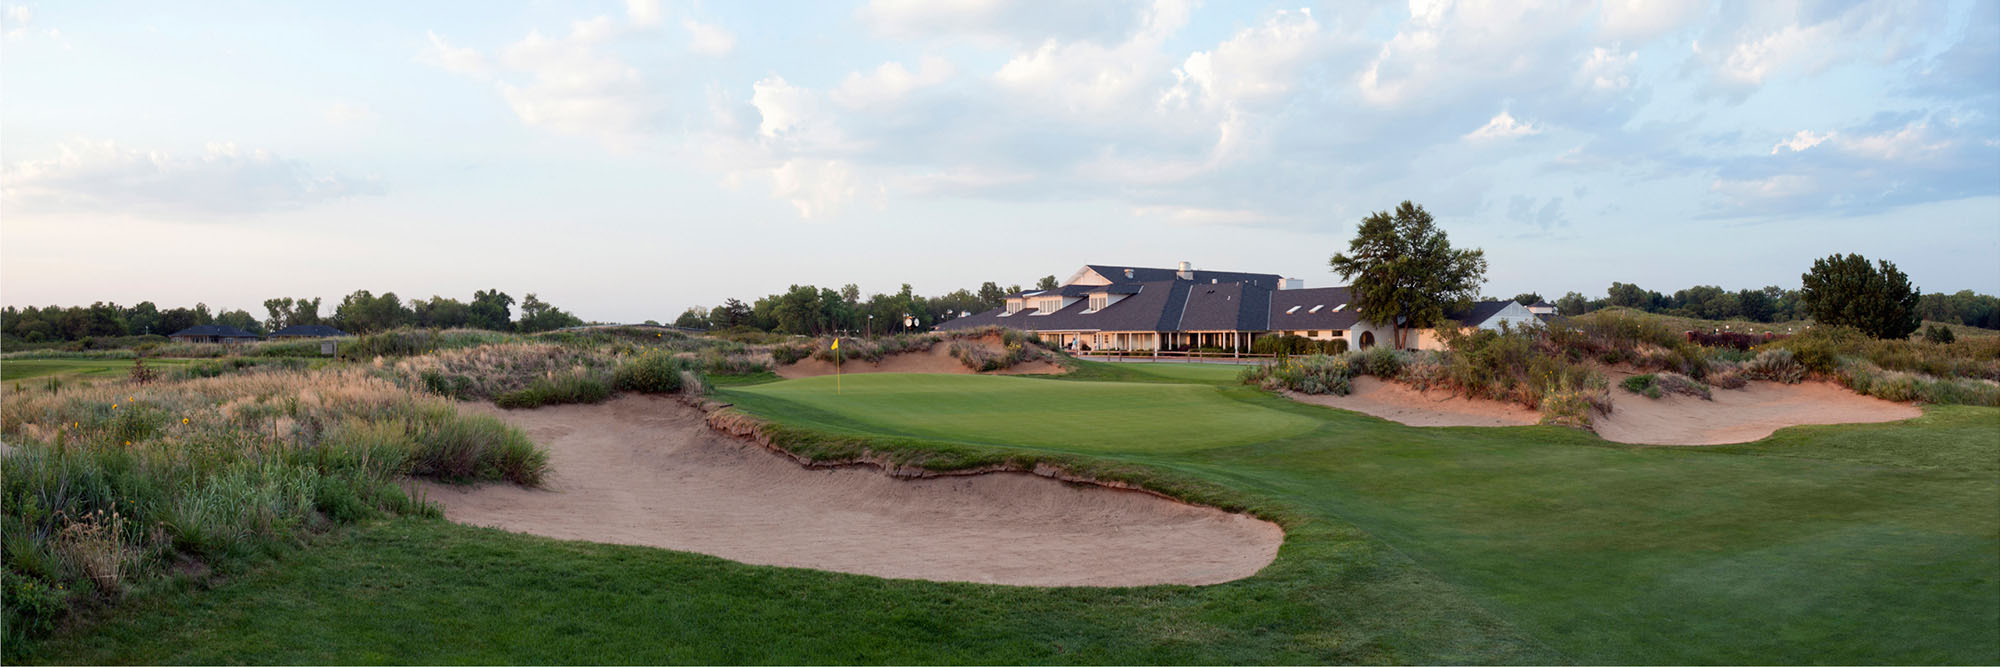 Golf Course Image - Prairie Dunes Country Club No. 7